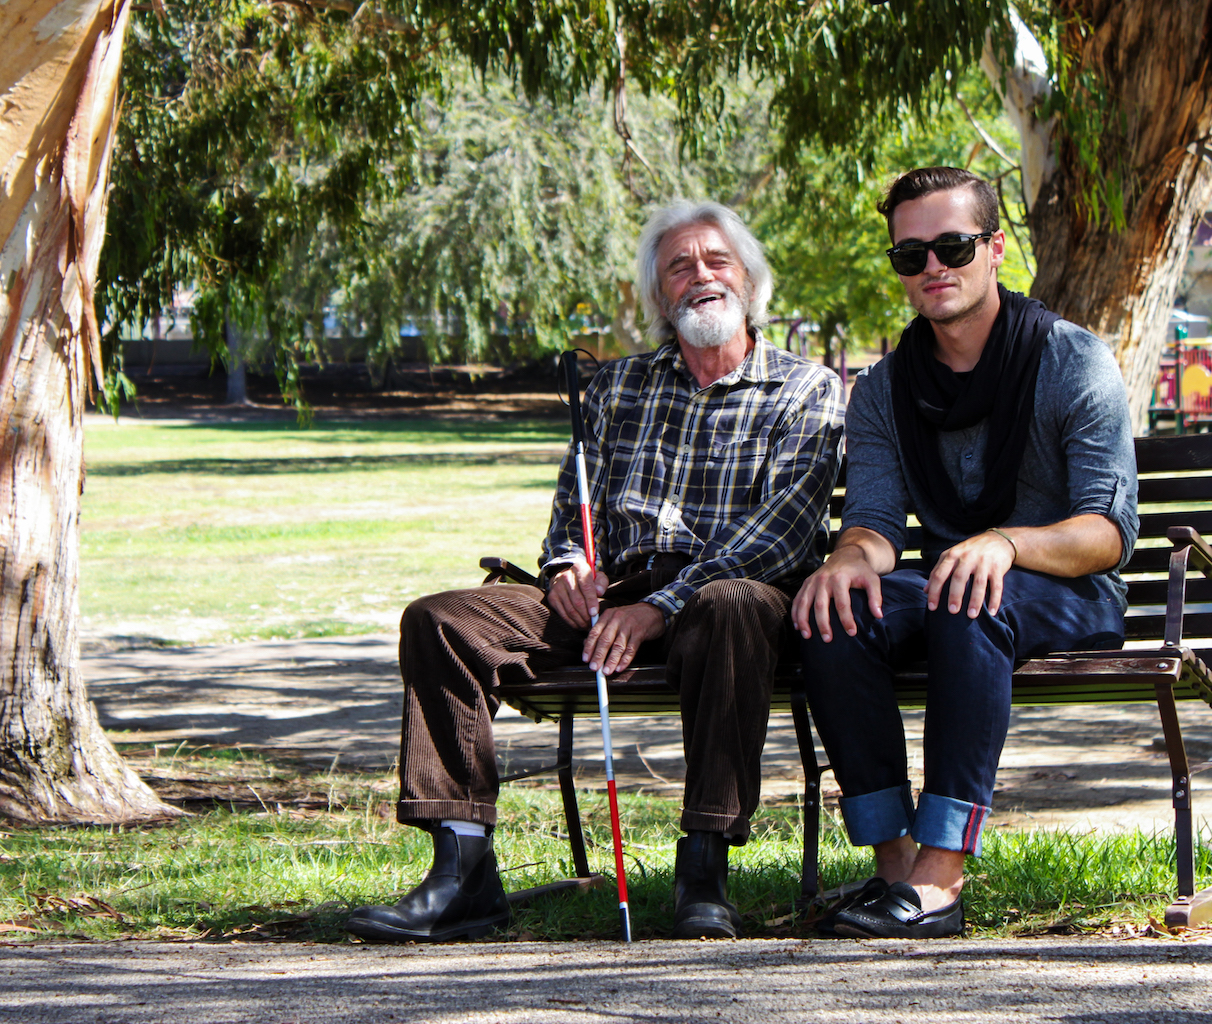 'The Bench': The Remarkable Story of What One Blind Man Can Teach You in 5 Minutes